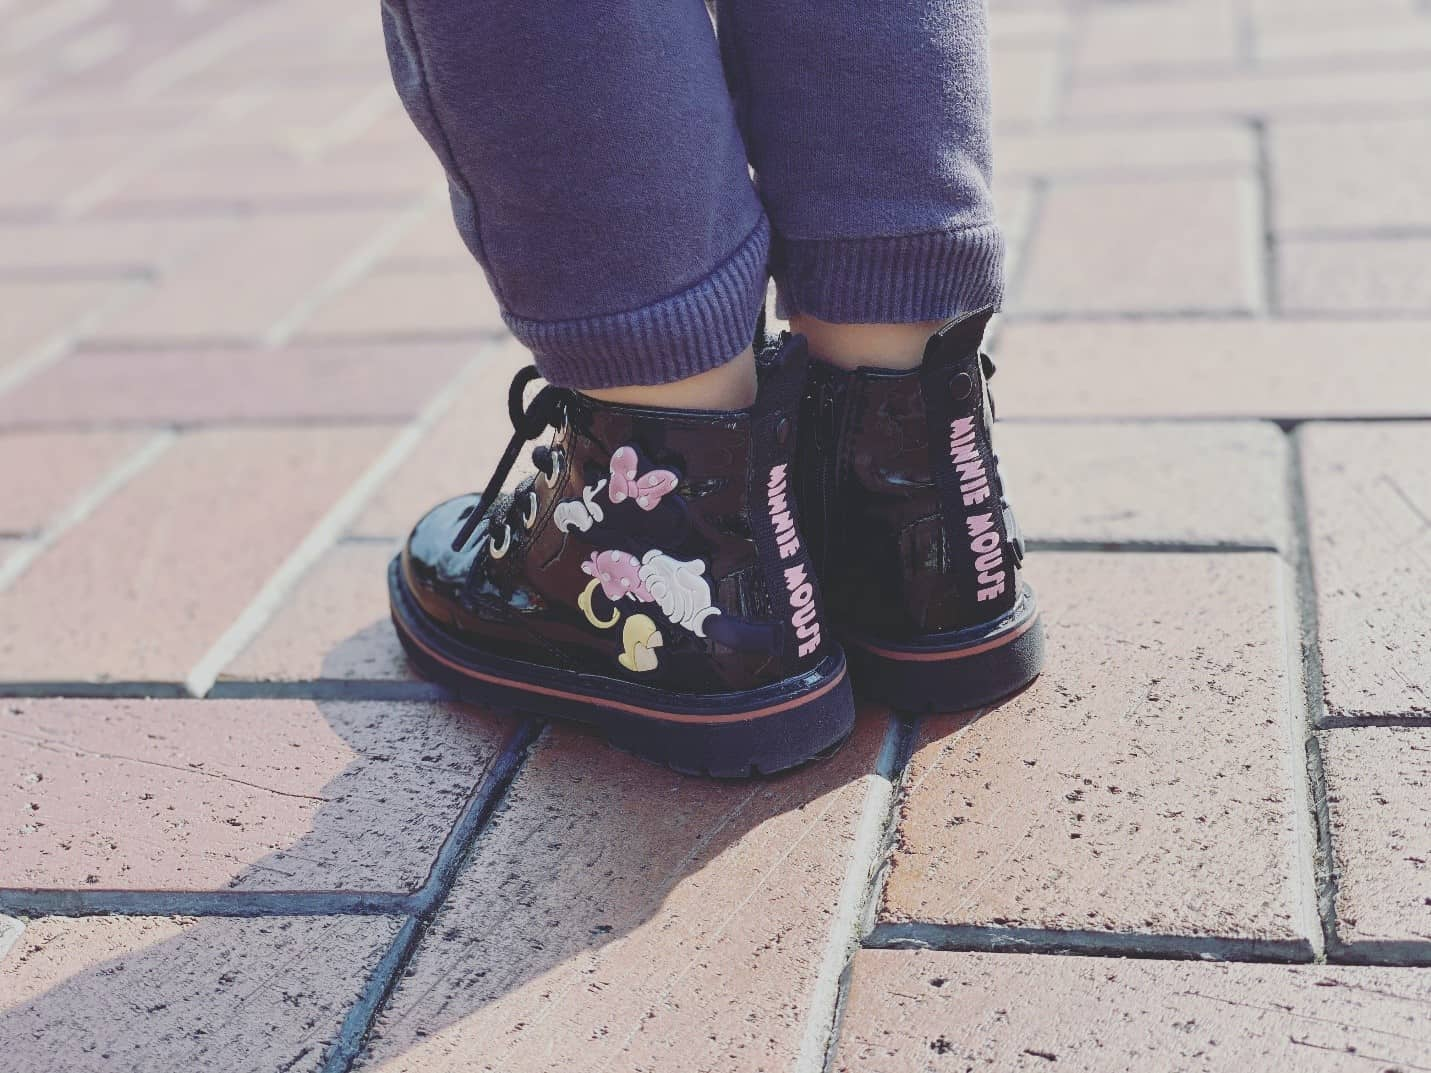 wearing baby shoes